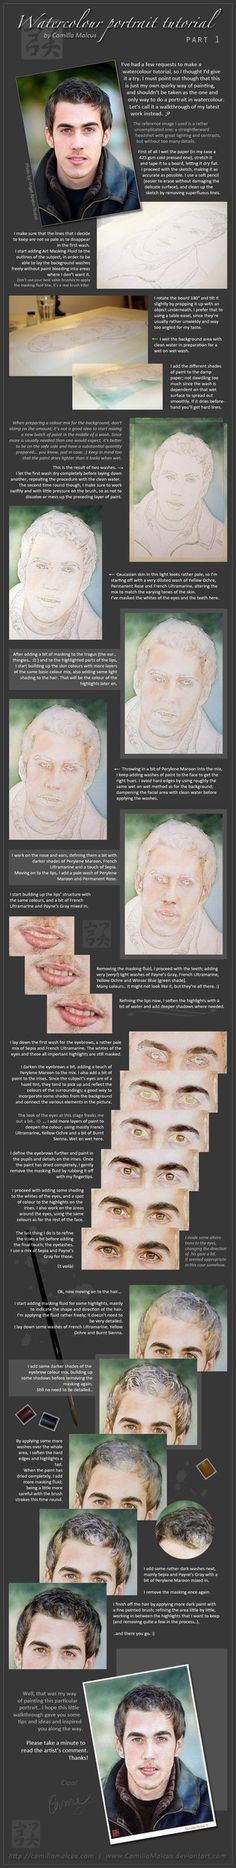 Watercolour Portrait Tutorial by *CamillaMalcus on deviantART